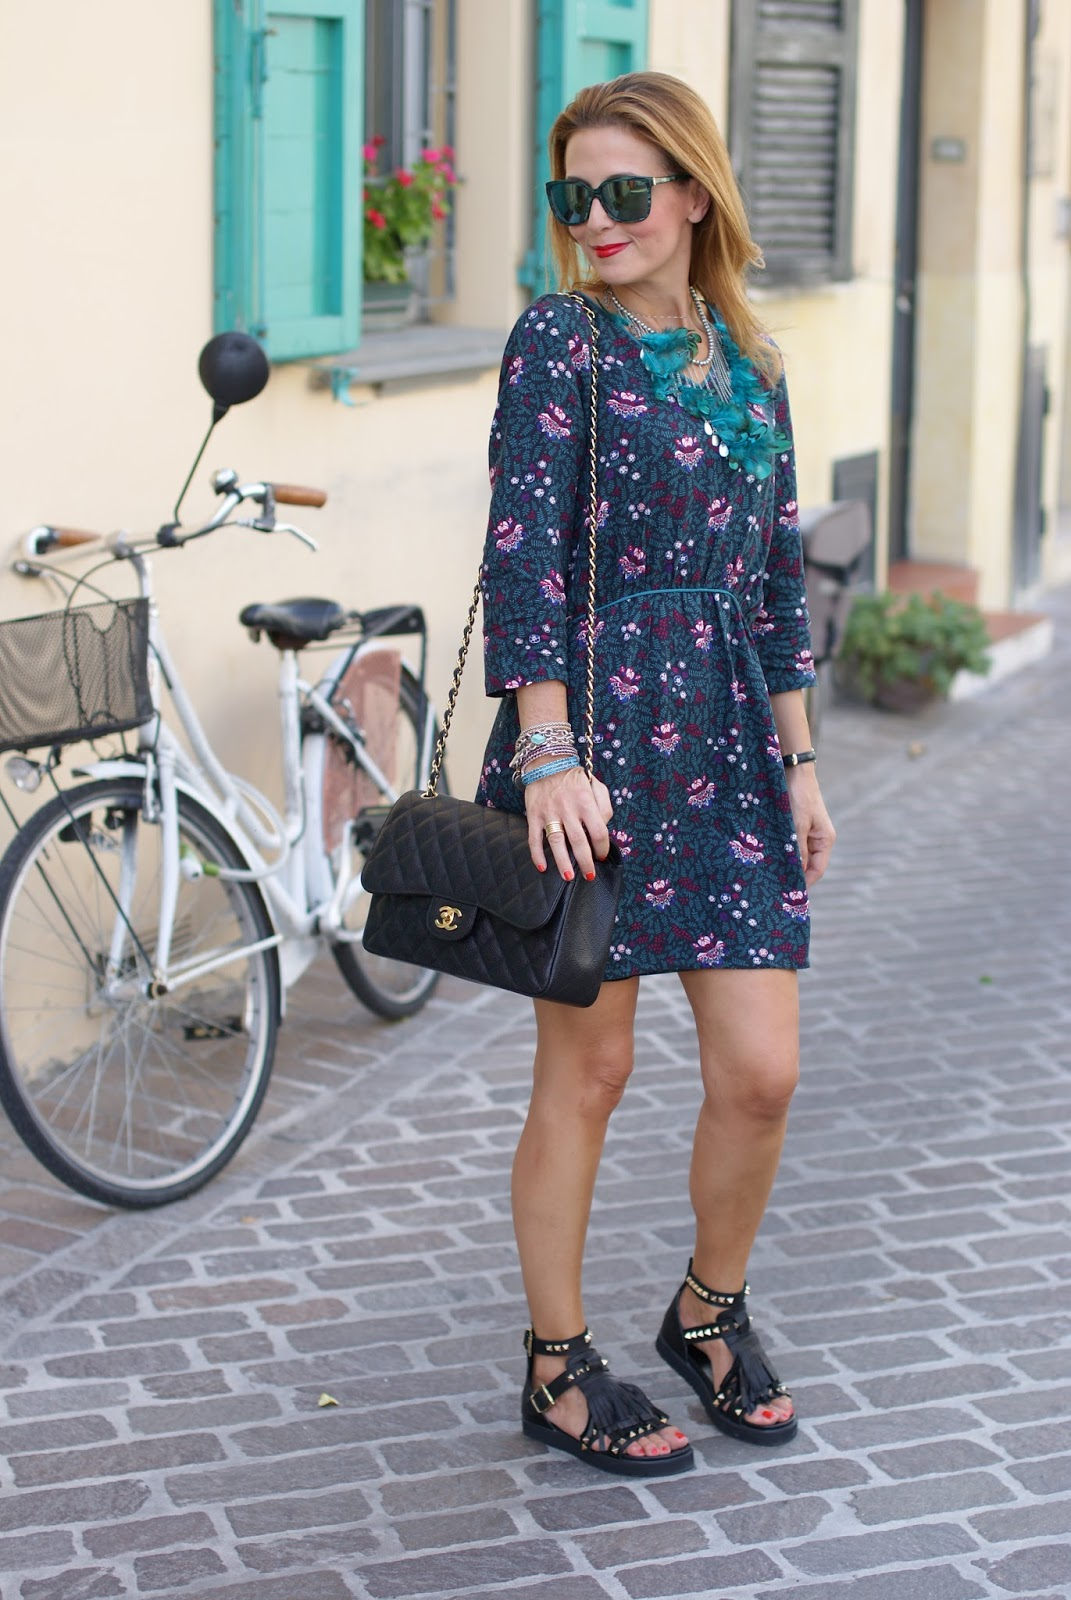 Paramita Magnolia dress worn with studded flat sandals on Fashion and Cookies fashion blog